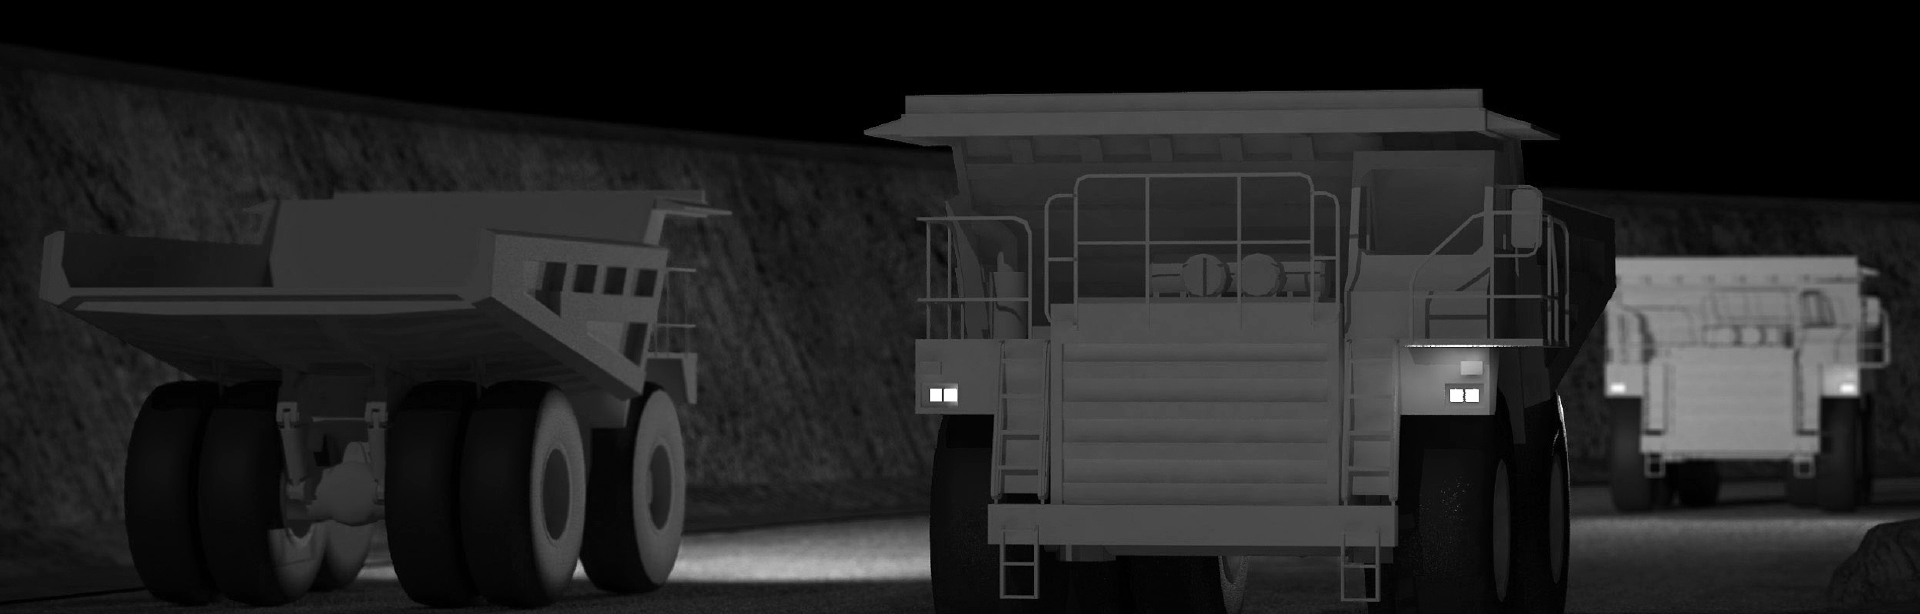 This Lighting Design Simulation Report shows how the light output of a Caterpillar 777D off-highway mining truck can be drastically improved with a CP9 LED Floodlight.